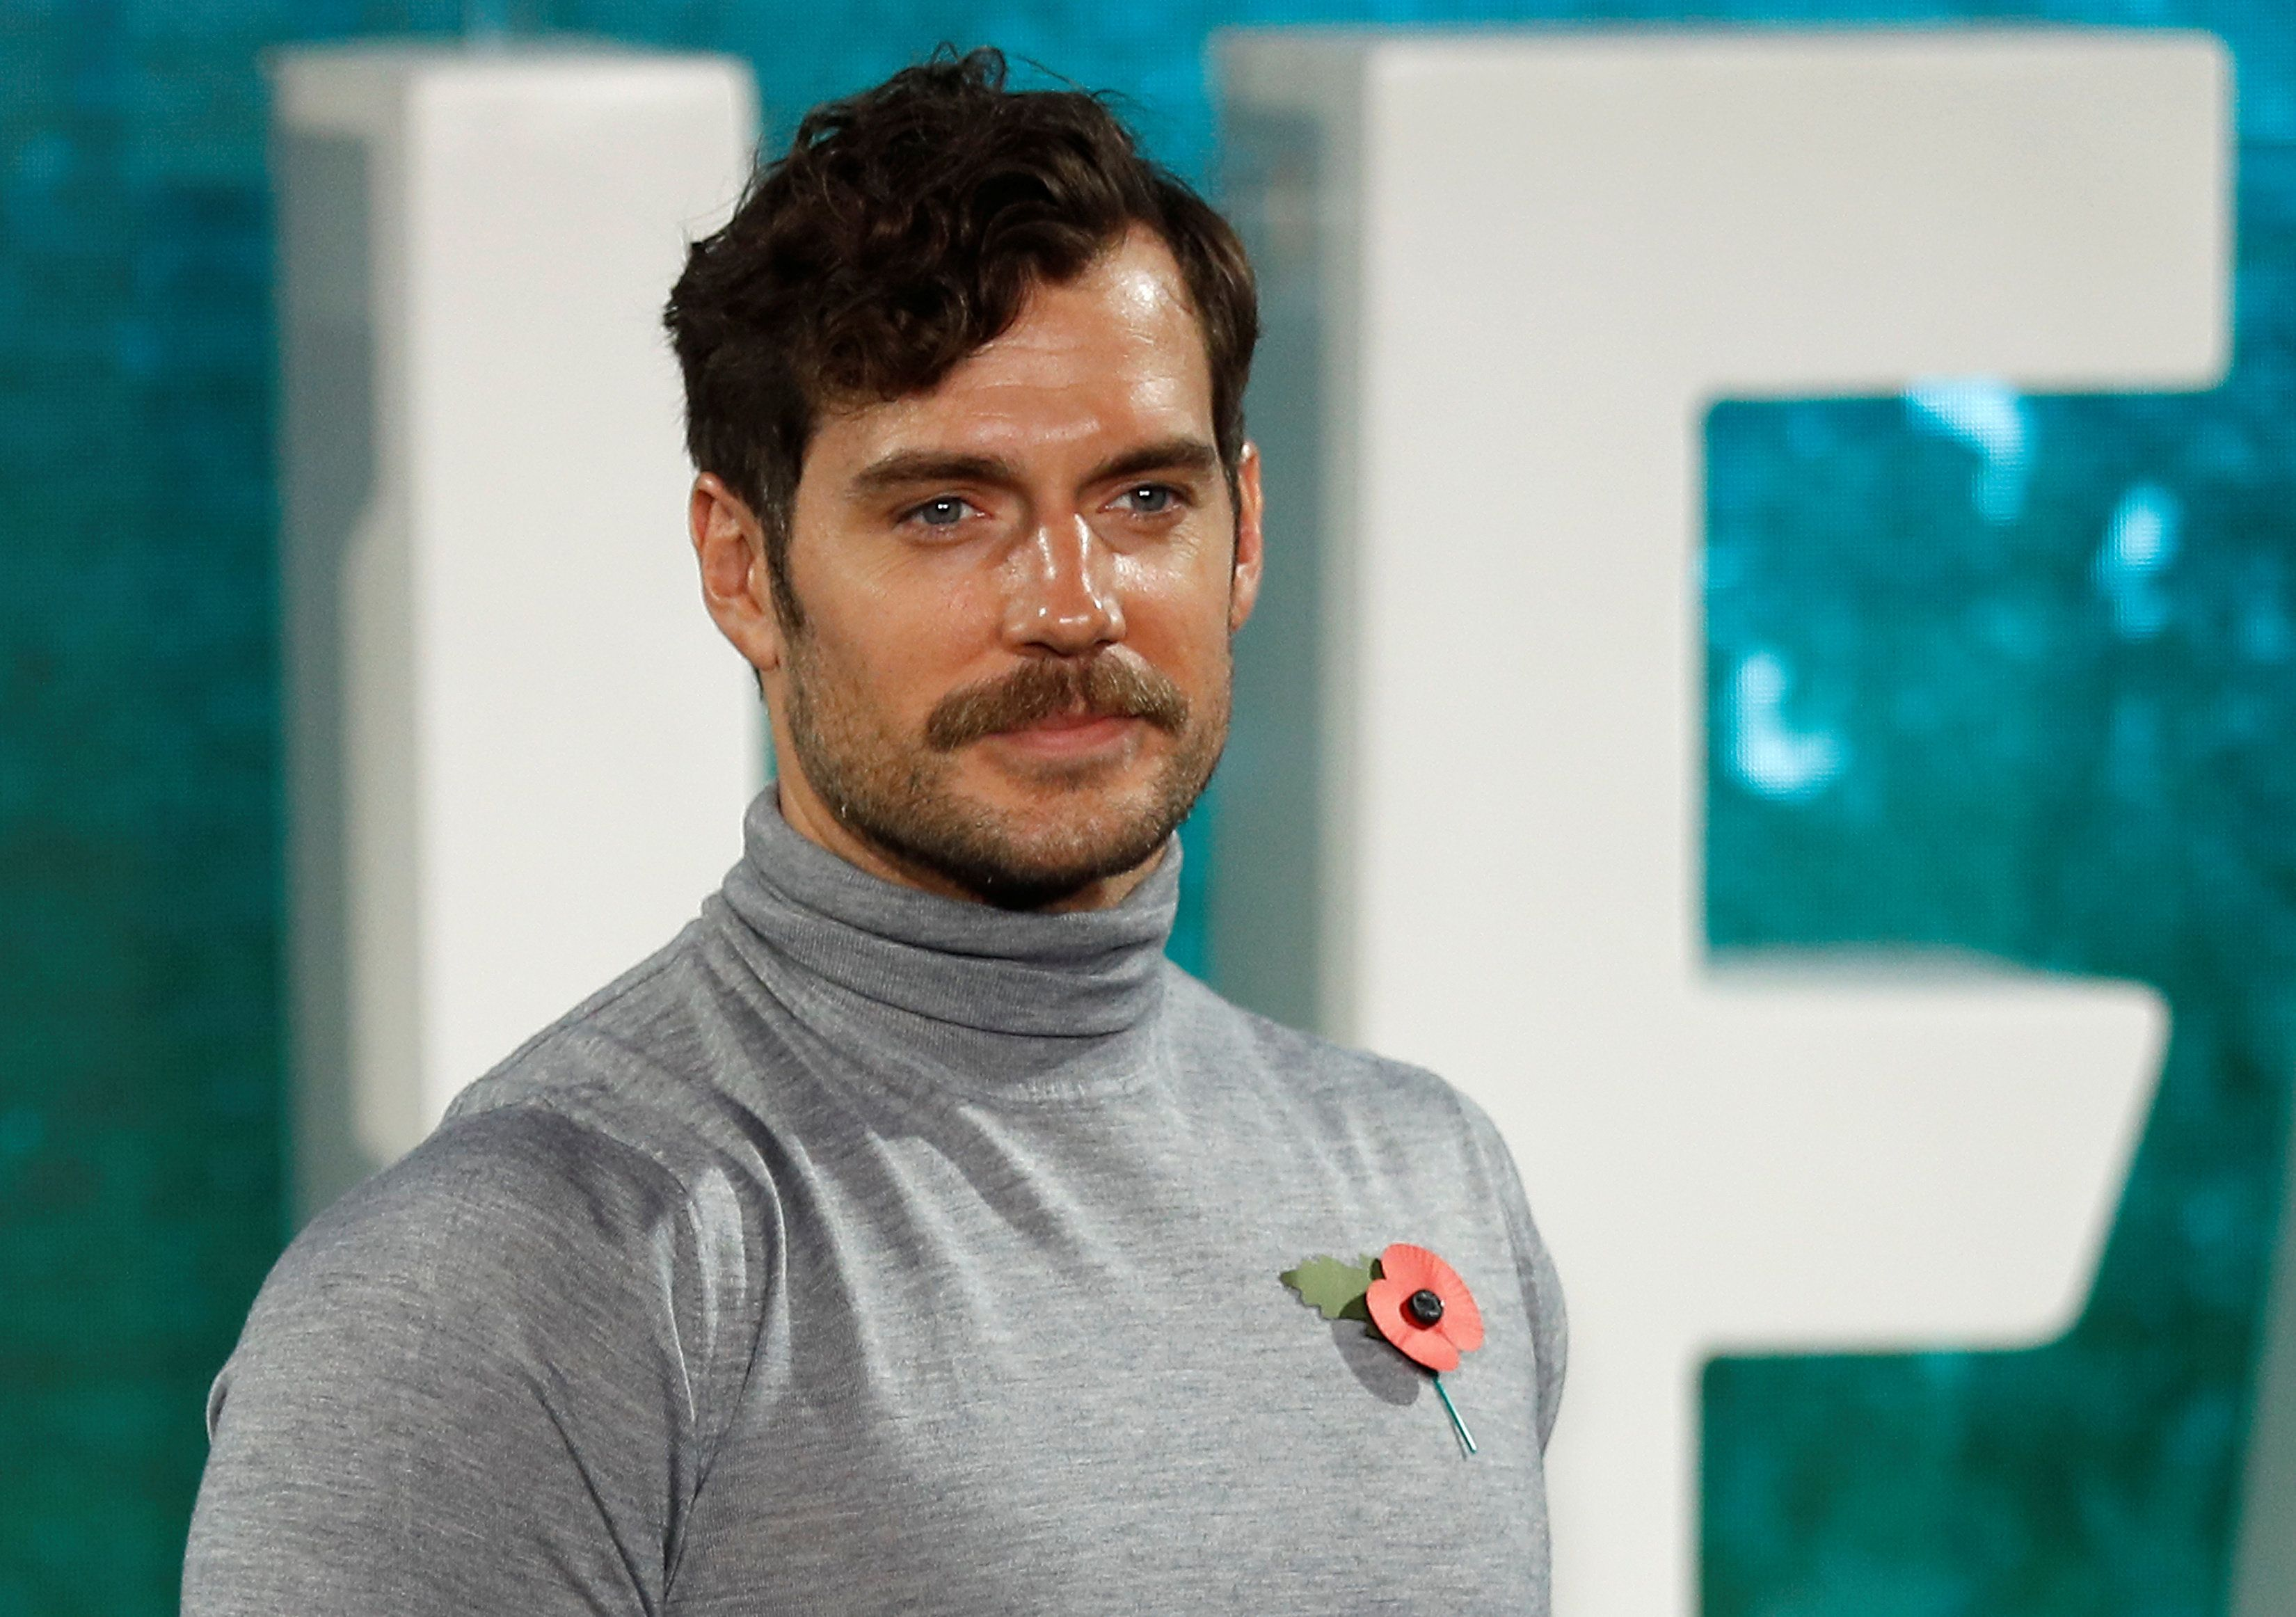 Henry Cavill Films a Touching Remembrance for His Mustache